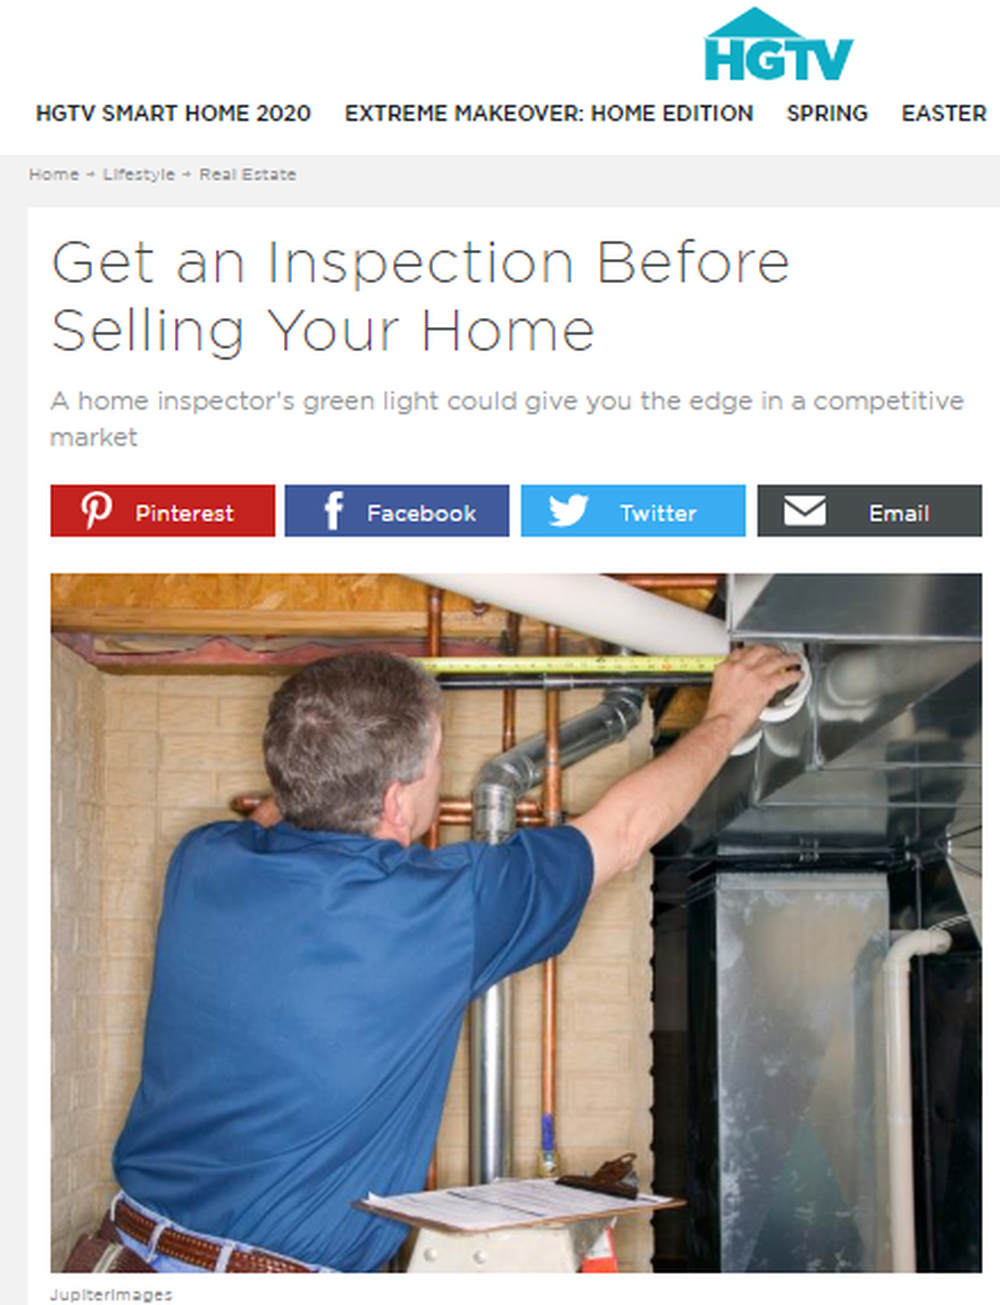 Get an Inspection Before Selling Your Home   HGTV.png